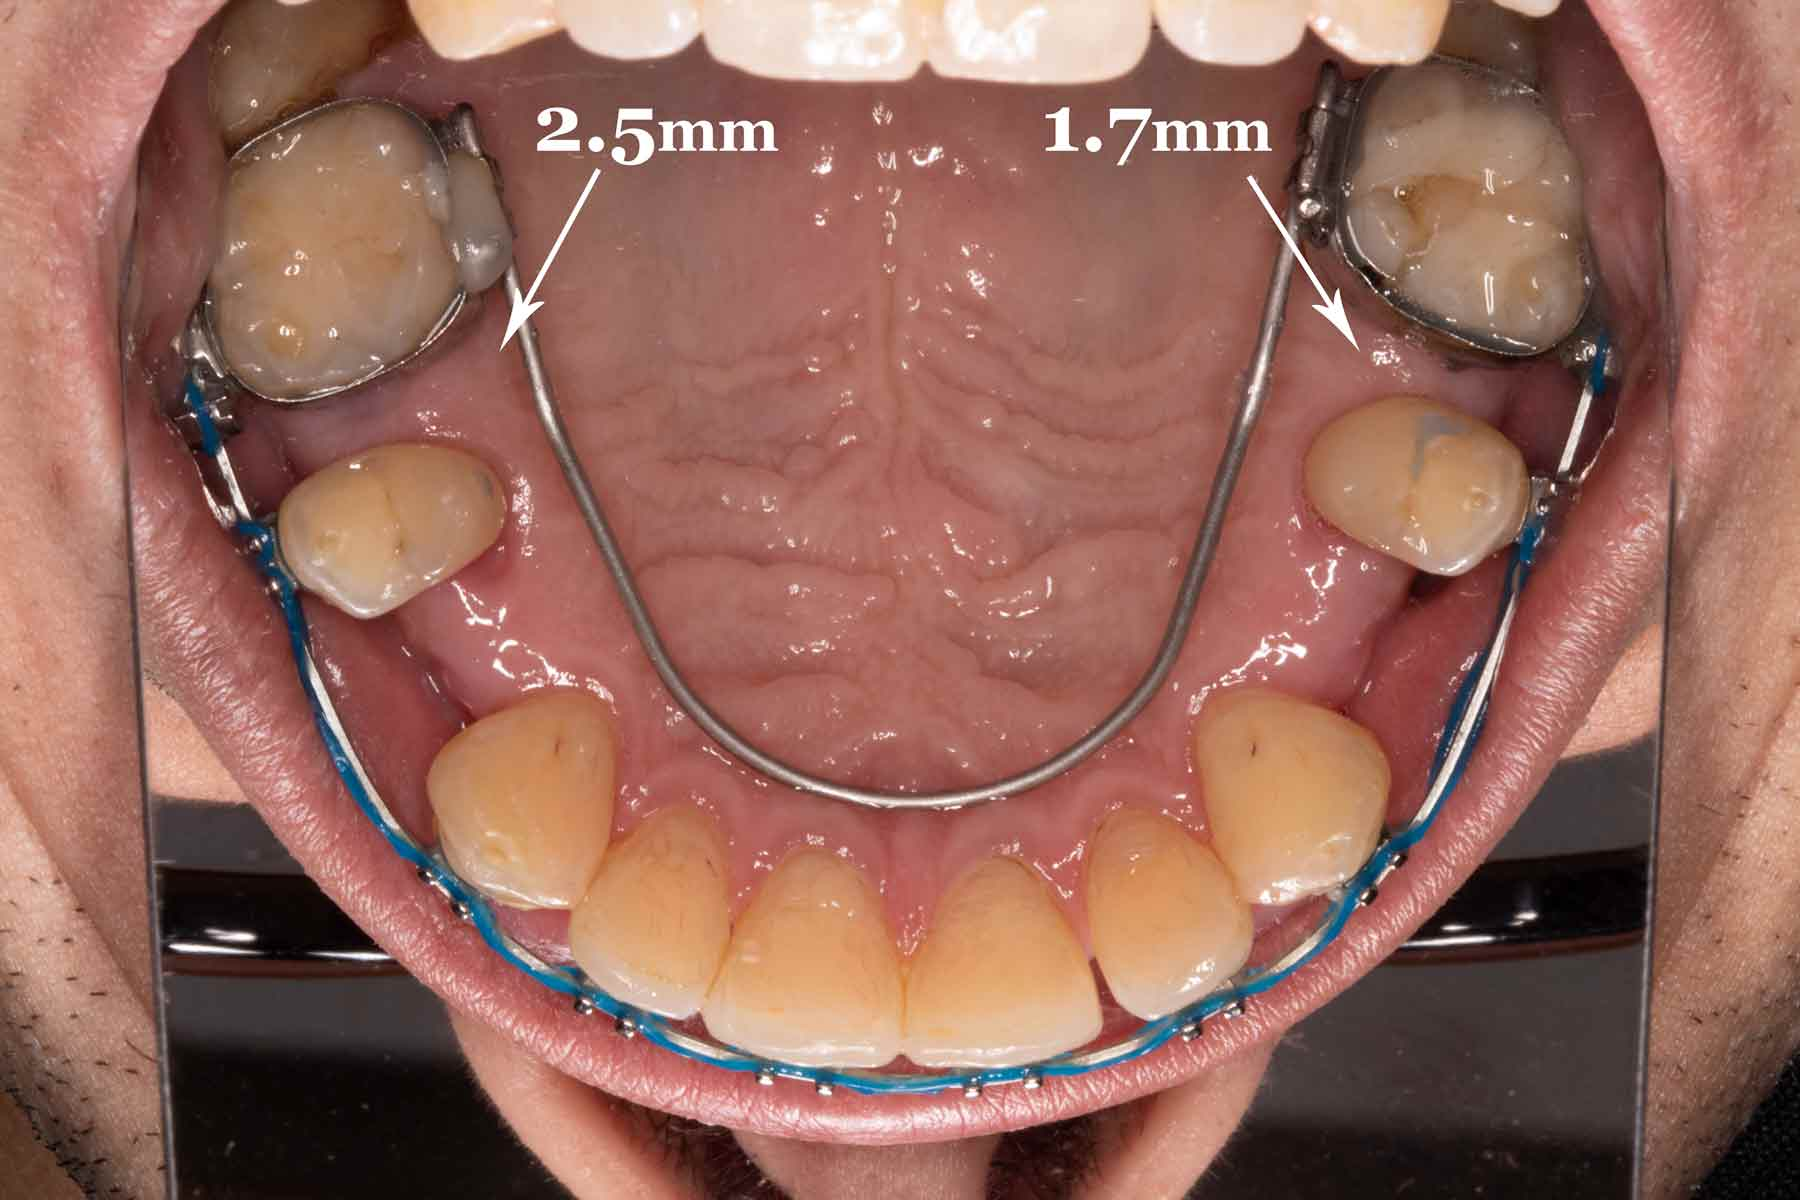 The Controlled Arch leverages the combined root strength of the front teeth to drag the back teeth forward to close the AGGA gaps. This can be problematic for patients whose front teeth have already been compromised by aggressive AGGA expansion, since using the front teeth for anchorage places additional stress on them.